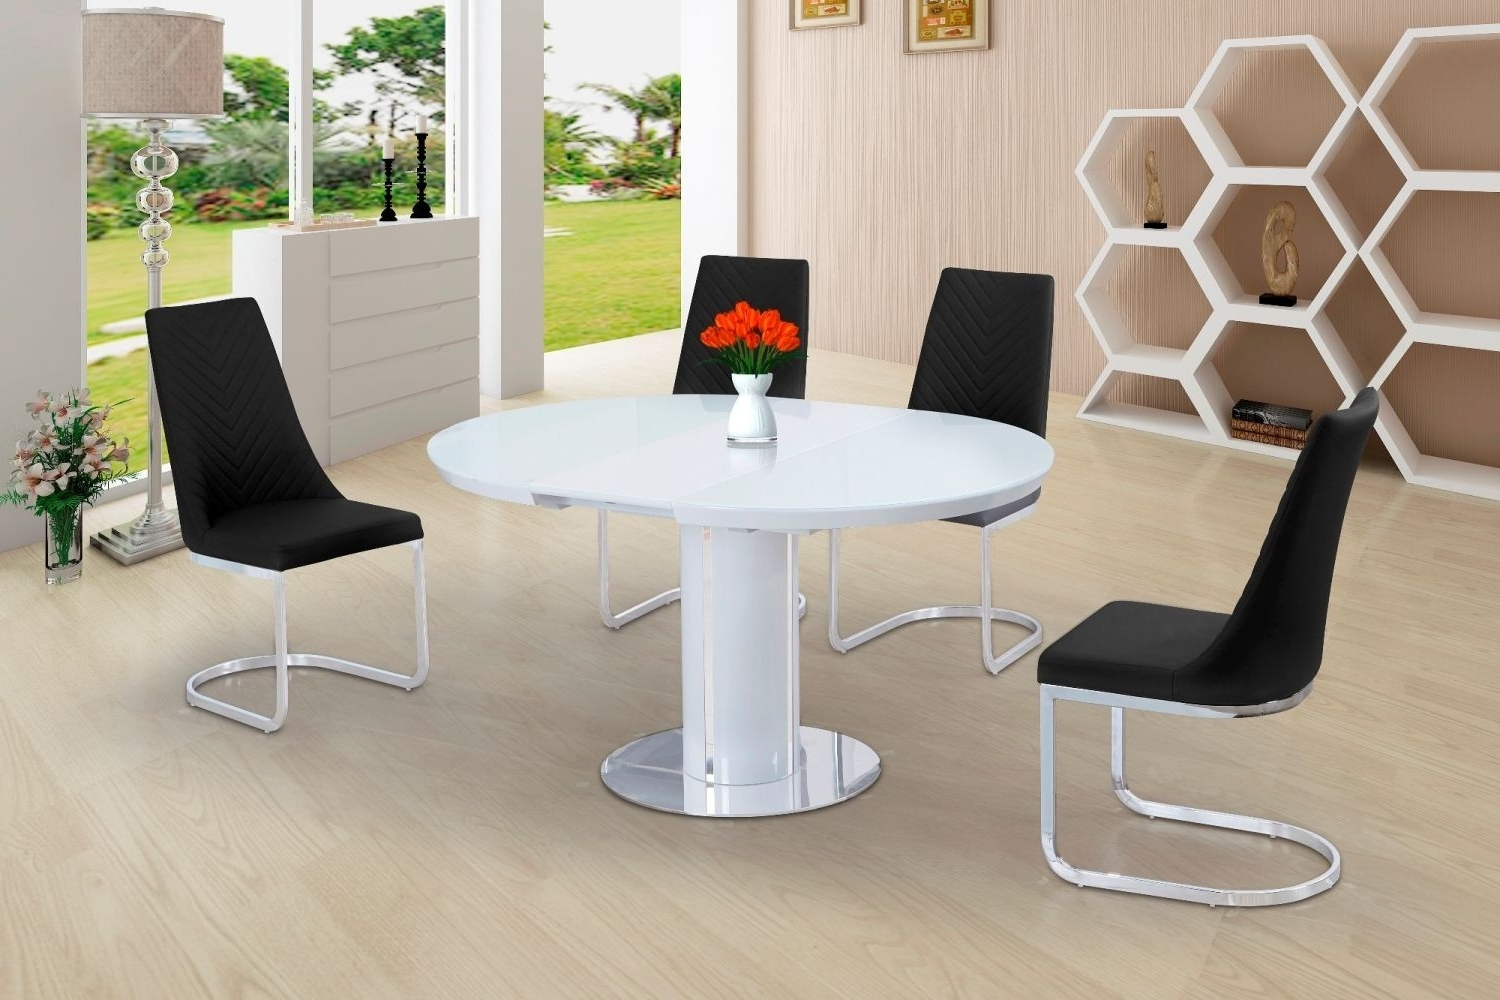 Famous Extending Round Dining Tables Inside Buy Space Saving White Gloss Extending Round Dining Table (View 8 of 25)